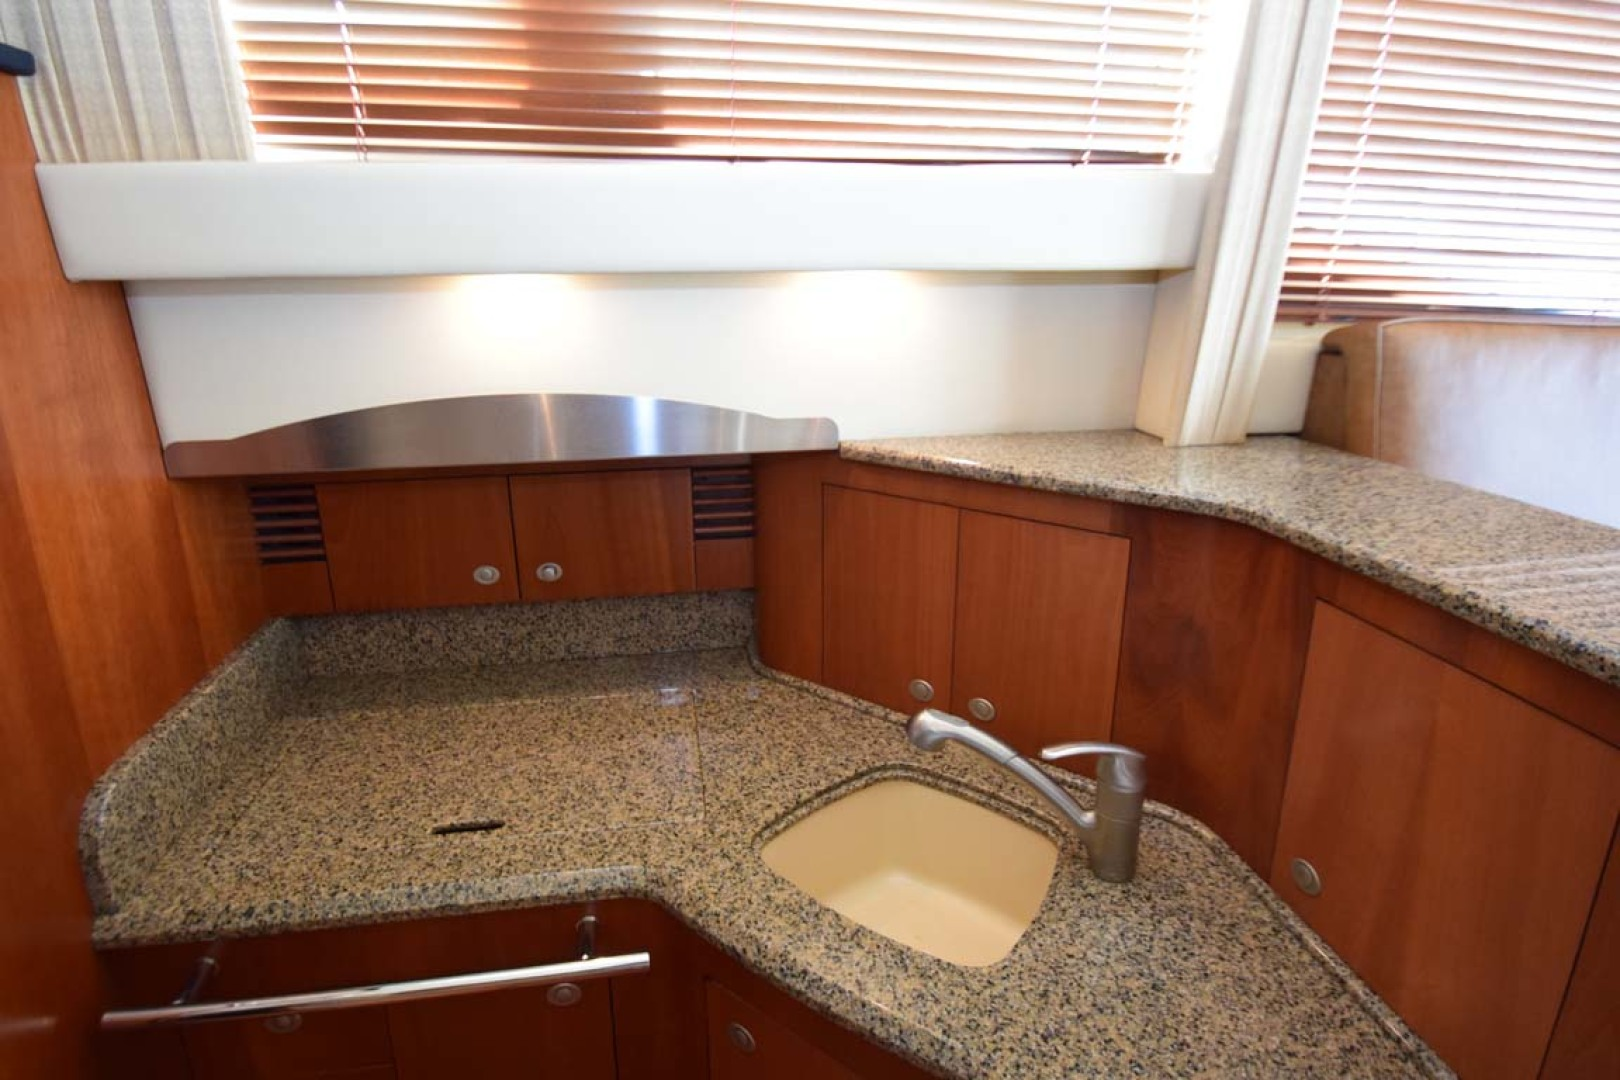 Sea Ray-44 Sedan Bridge 2006-Mr. Munch Coral Gables-Florida-United States-Sink And Covered Cooktop-1229853 | Thumbnail